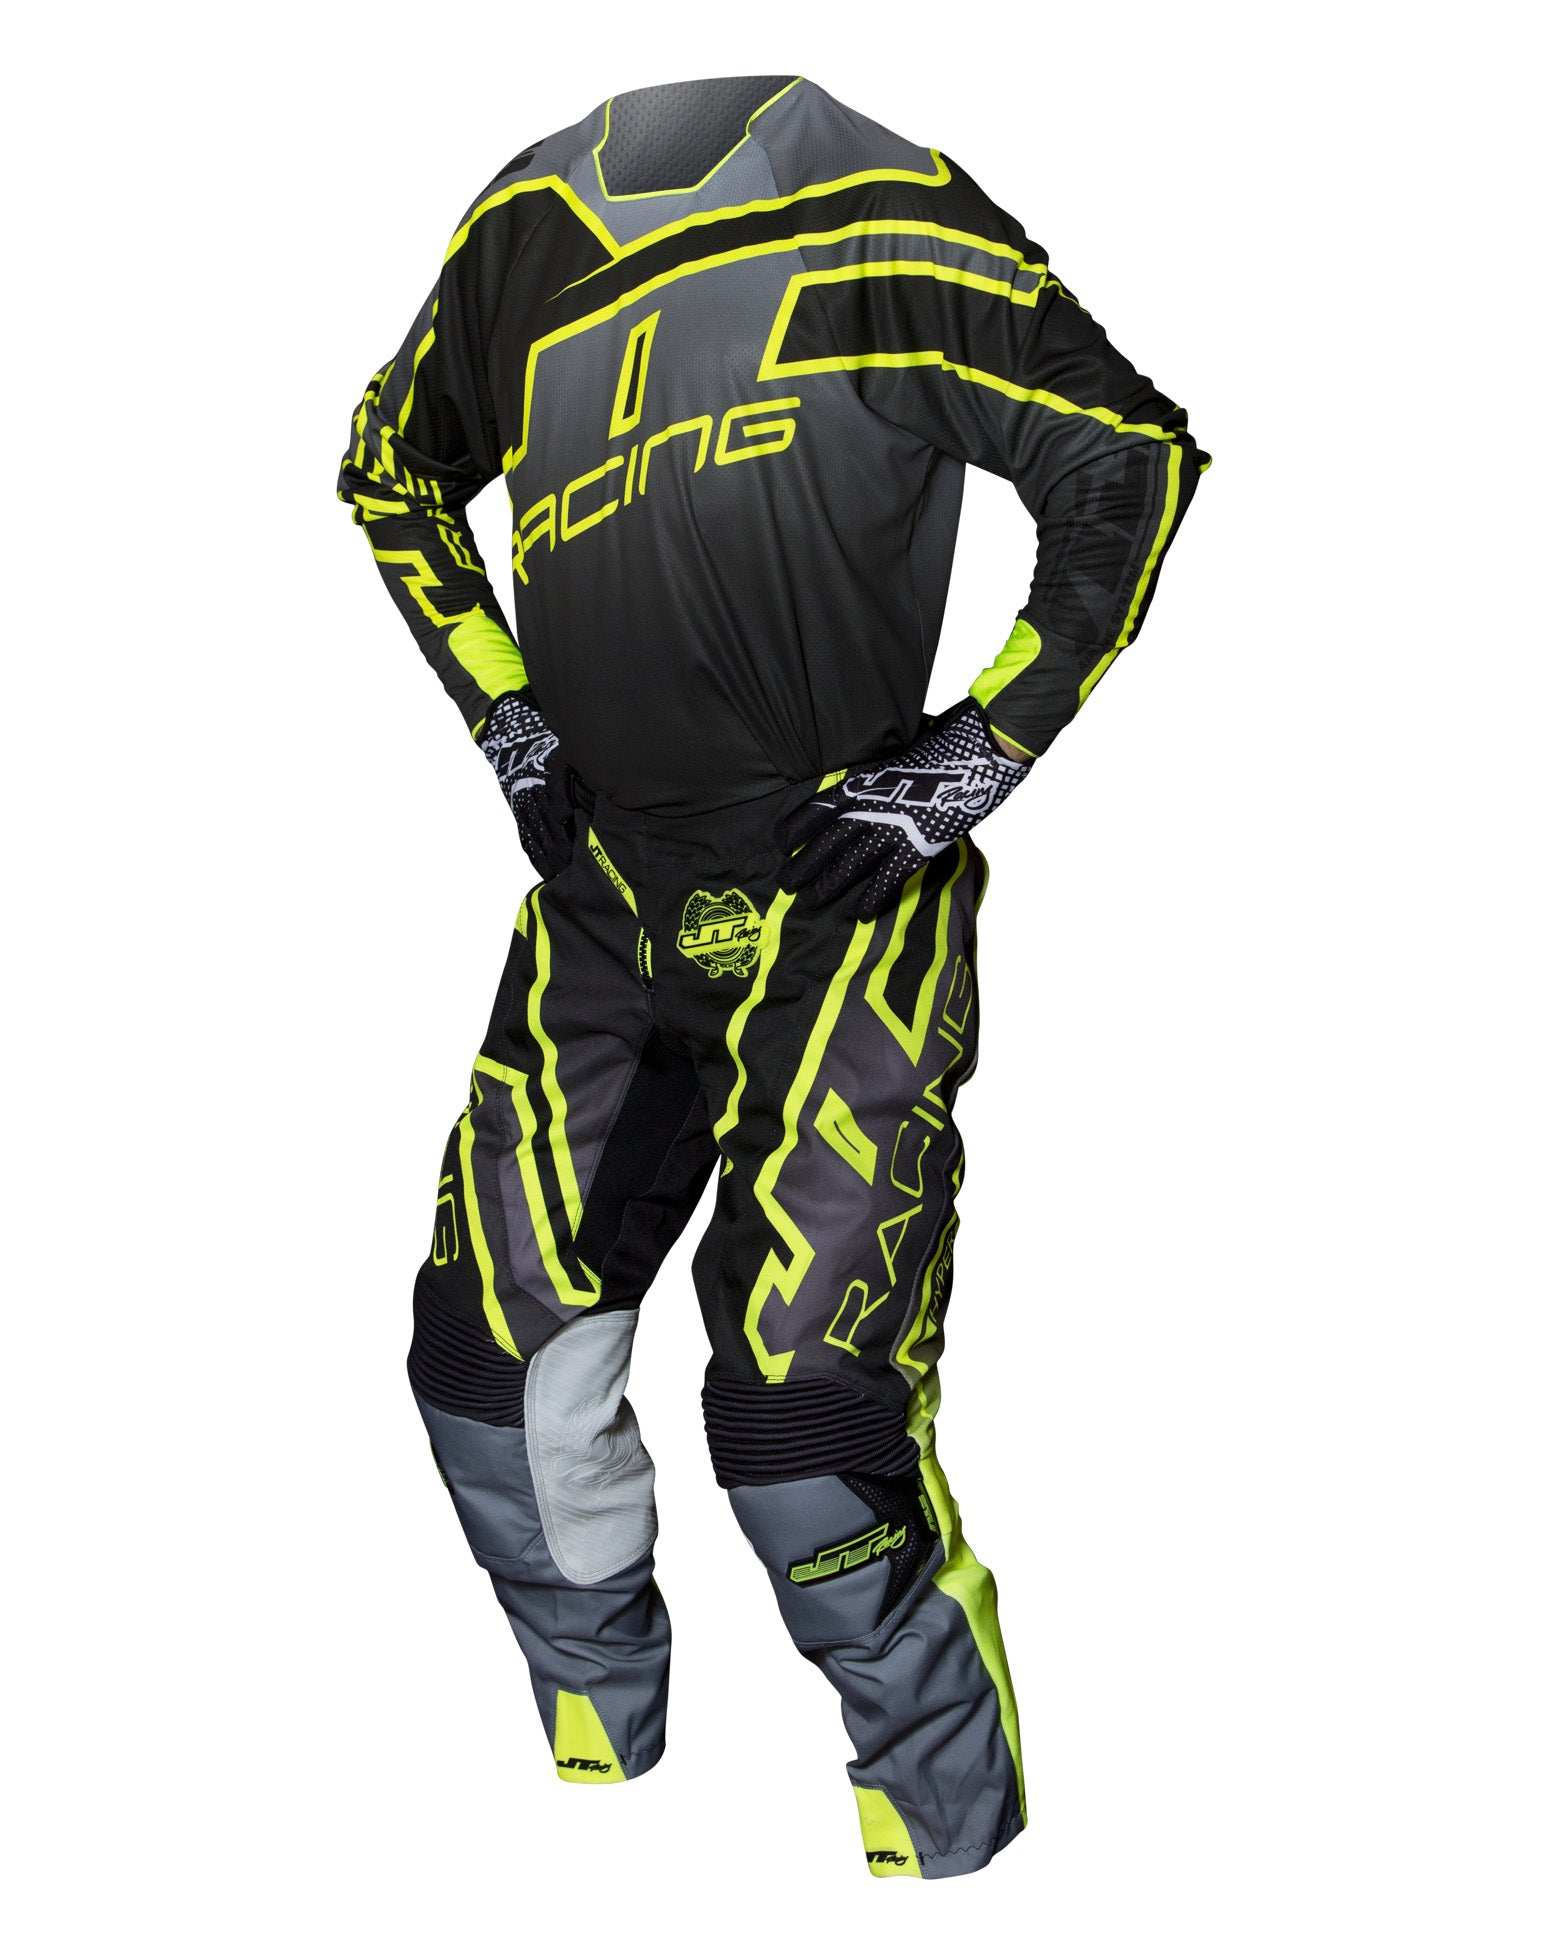 JT RACING USA-2017 Hyperlite Revert Pants, Grey/Black/Yellow